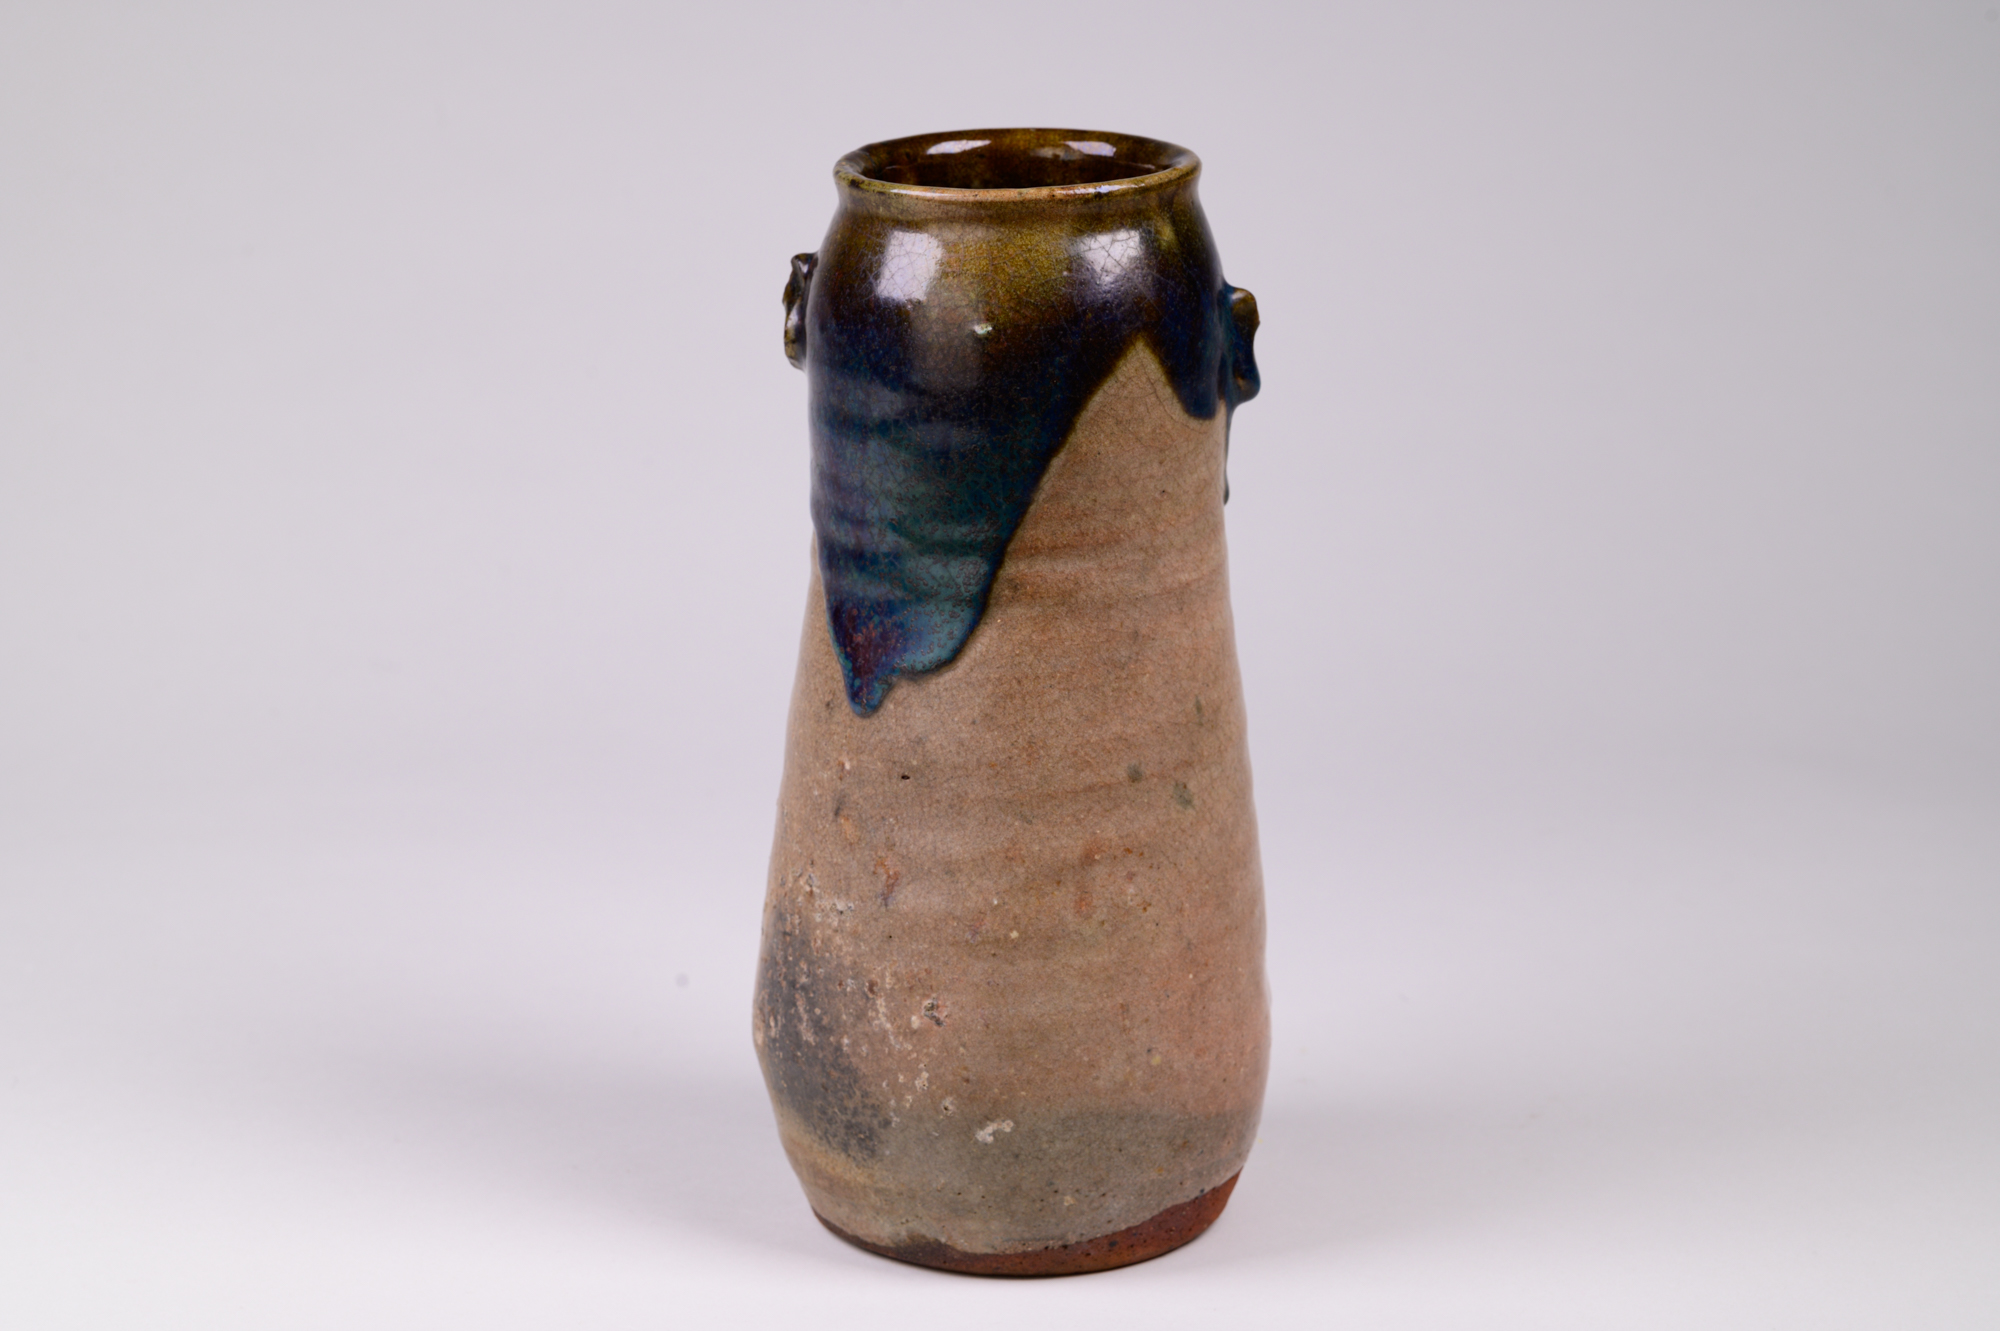 Large, Beautiful Country-Ware Vase